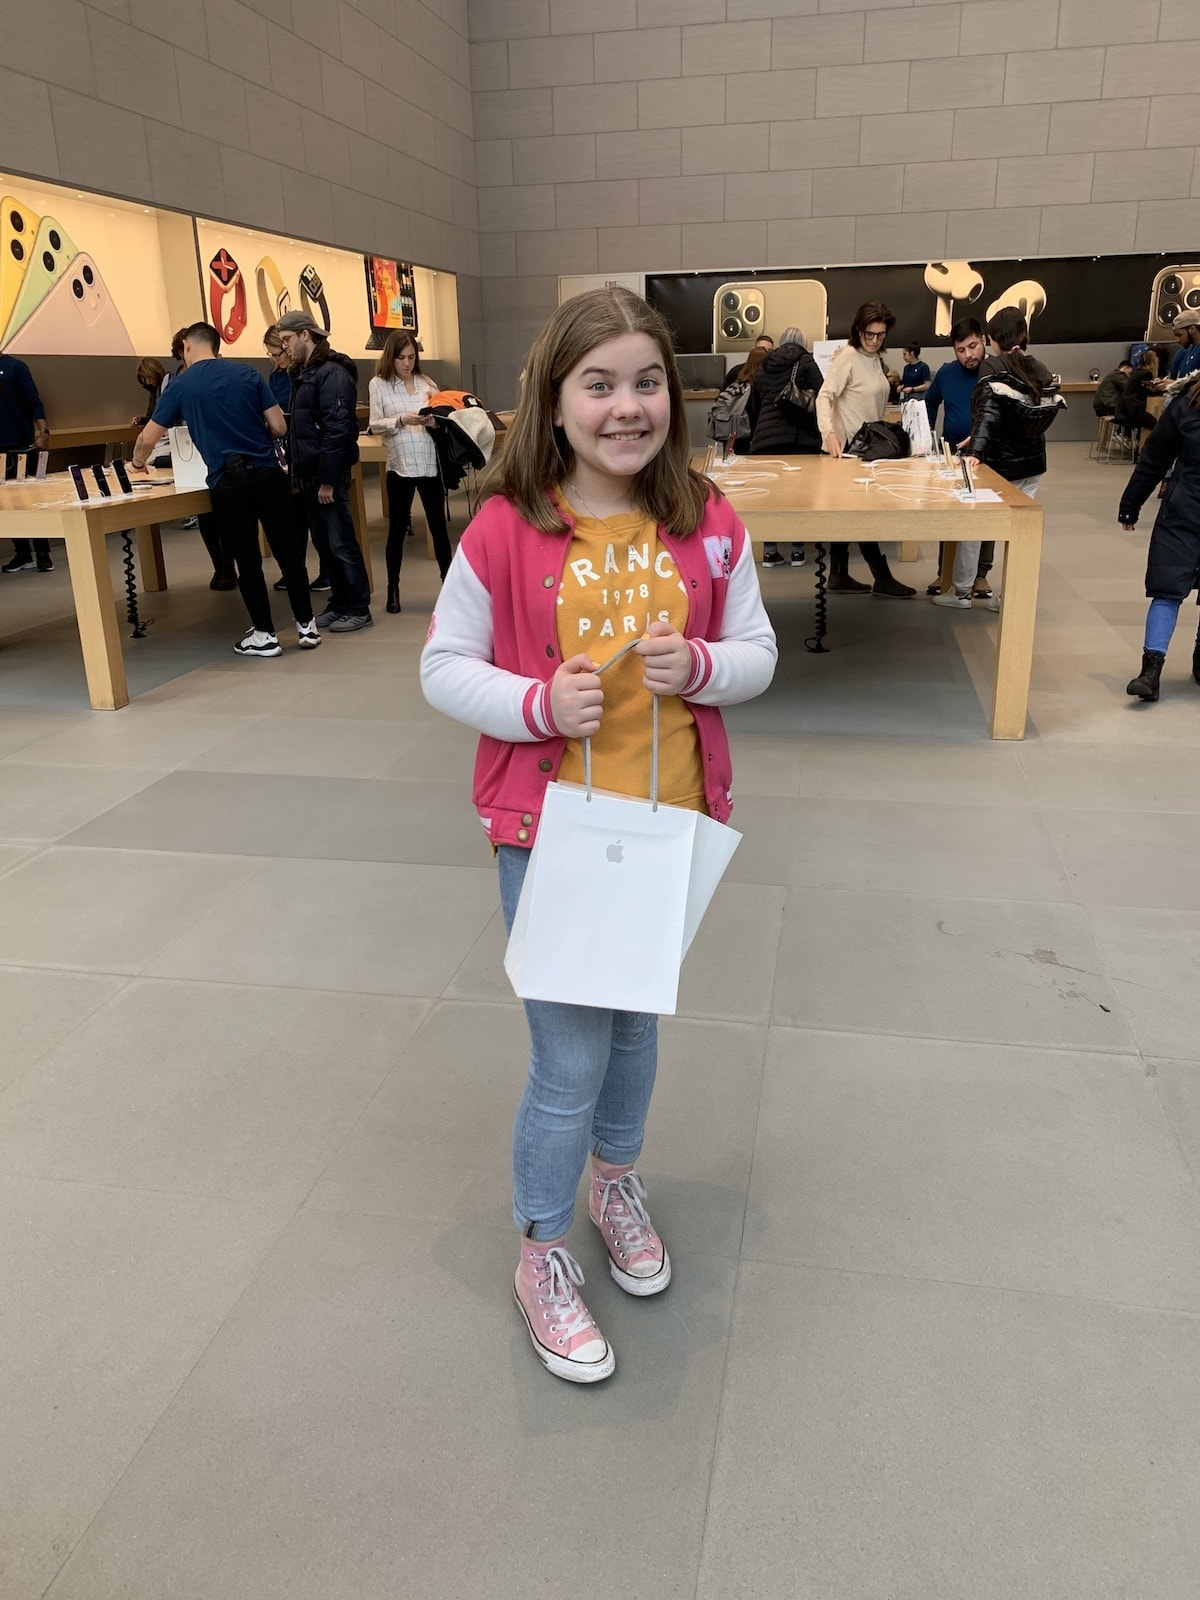 Brooke getting an Ipad at the Apple store